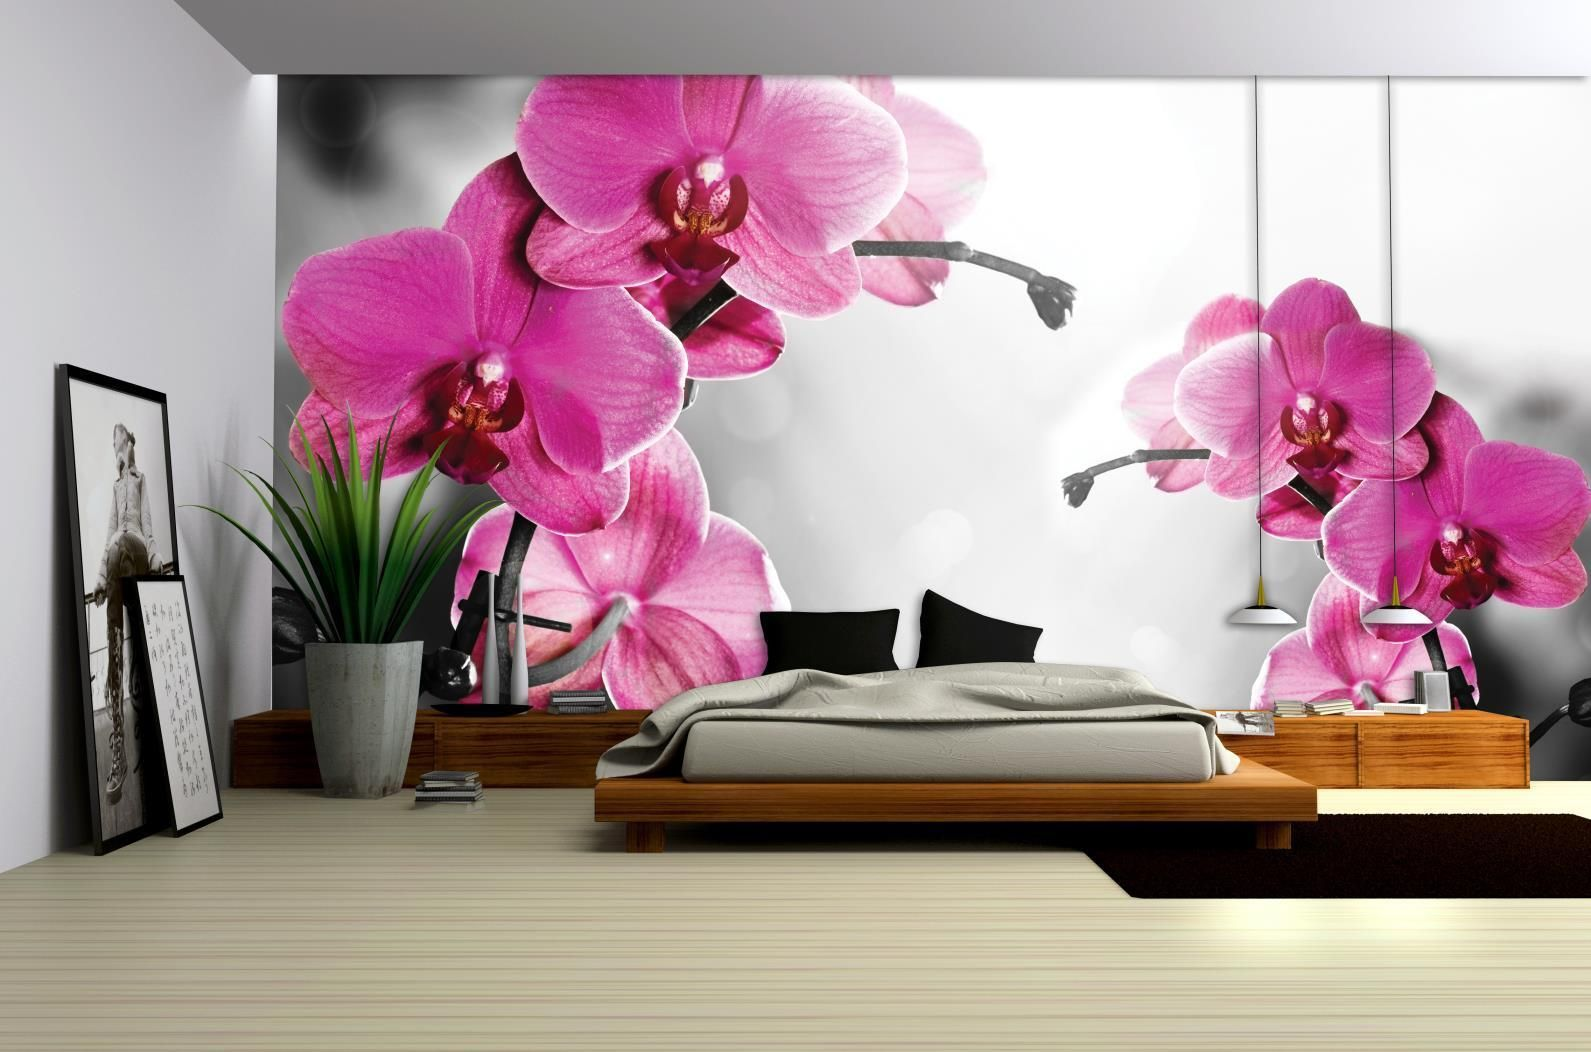 Vlies Fototapete Fototapeten Tapete Tapeten Poster Orchideen Blüten 3fx1034ve Eur 1 00 Kostenlos Dinning Room Decor Bed Furniture Design 3d Wallpaper Decor